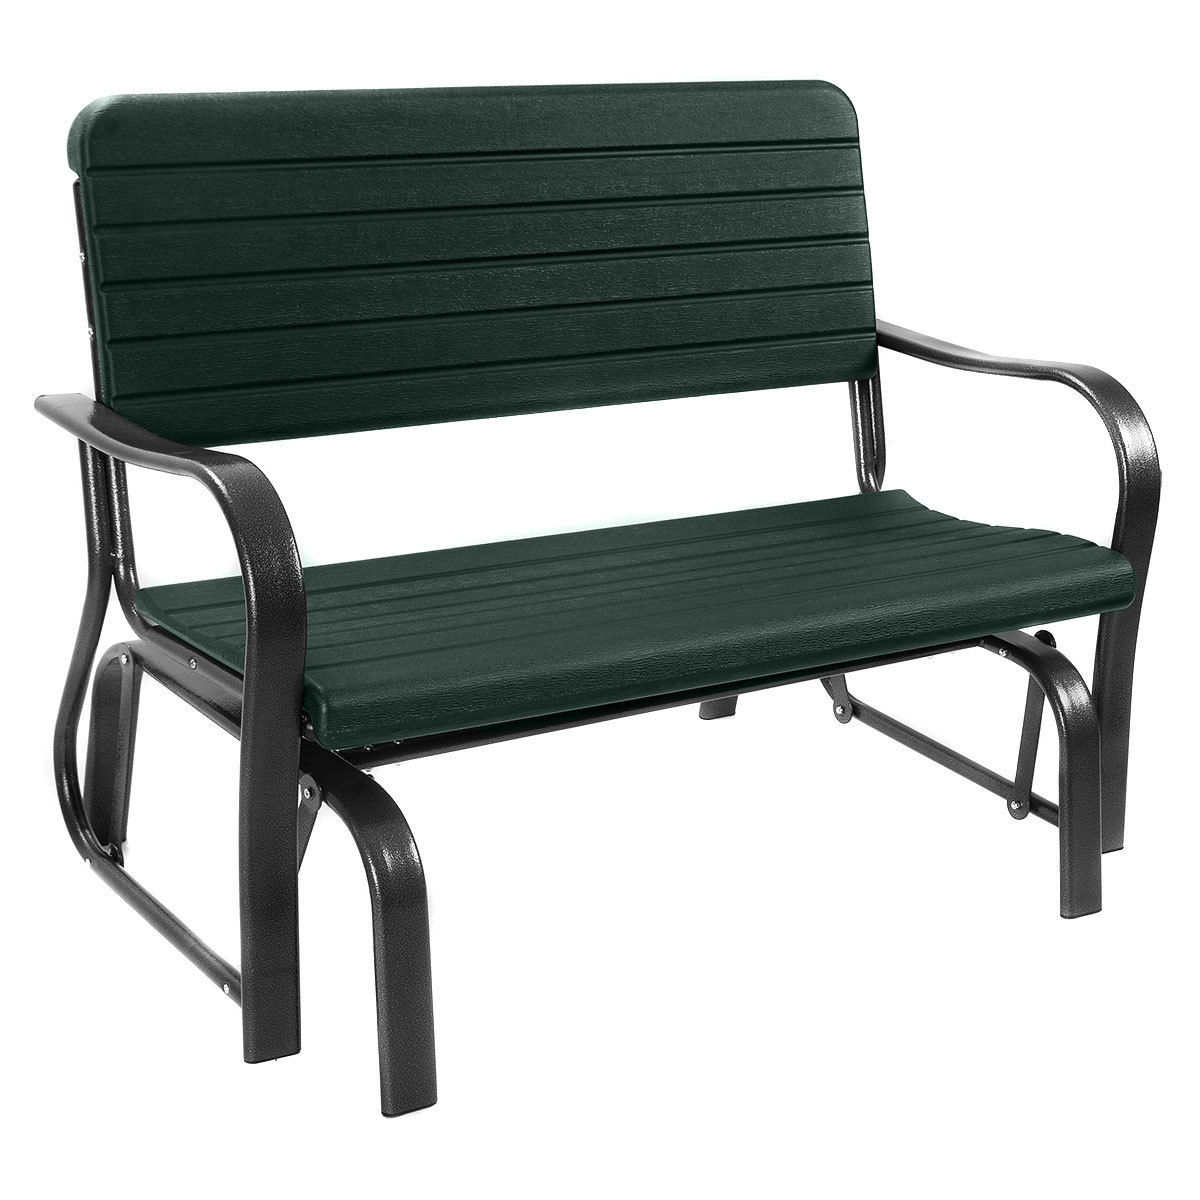 Most Up To Date Black Outdoor Durable Steel Frame Patio Swing Glider Bench Chairs Pertaining To Costway Outdoor Patio Swing Porch Rocker Glider Bench Loveseat Garden Seat Steel (Gallery 4 of 25)